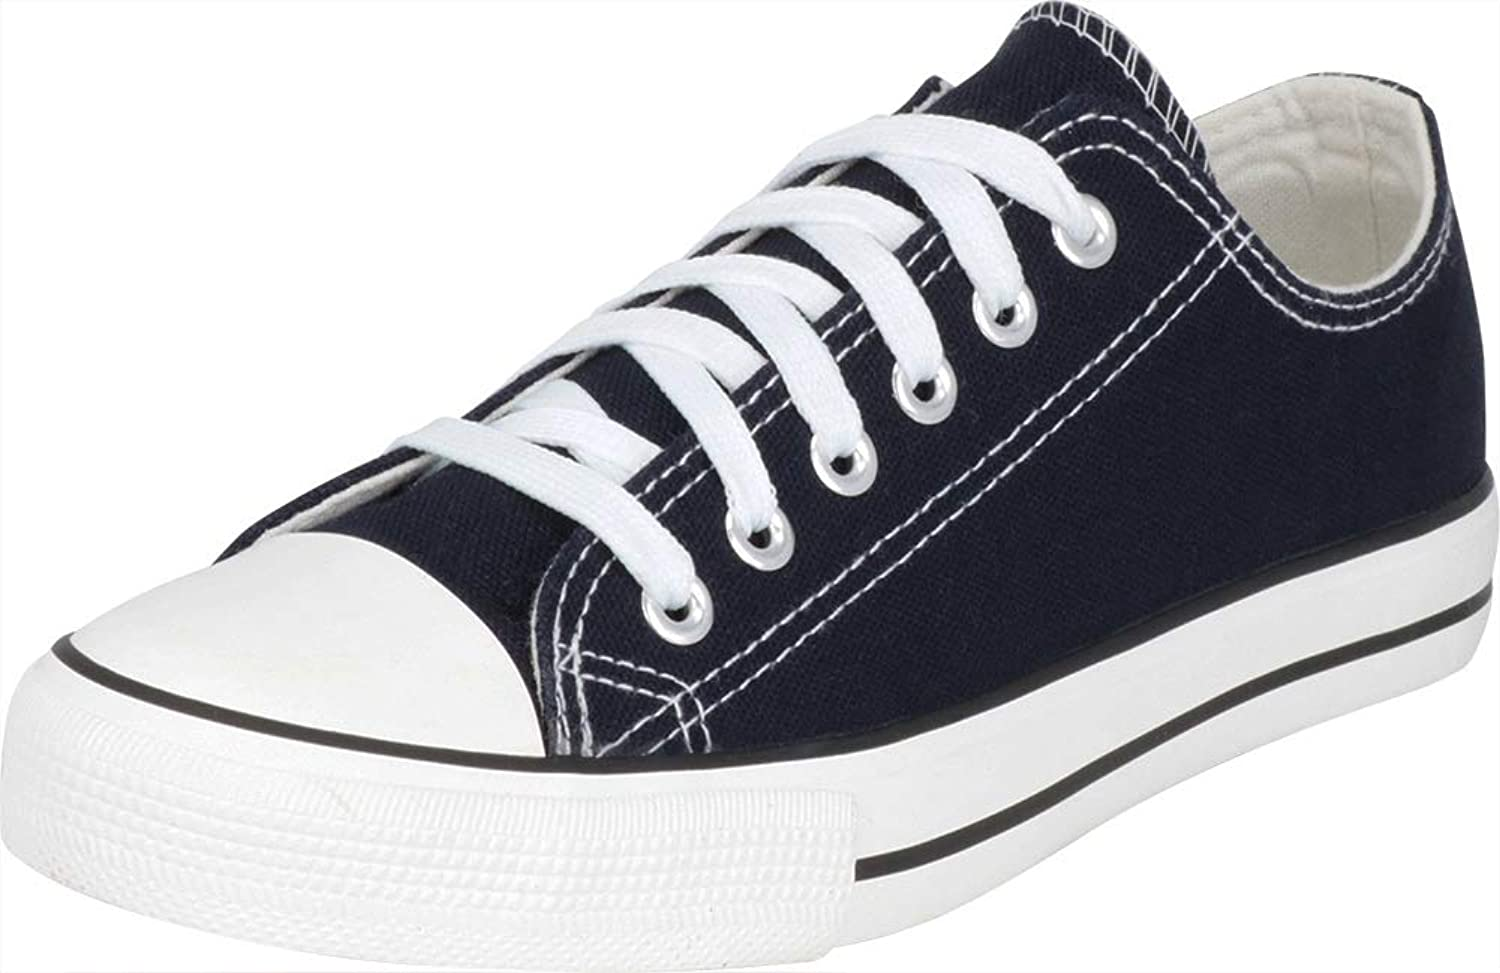 Cambridge Select Women's Classic Low Top Cap Toe Canvas Lace-Up Fashion Sneaker